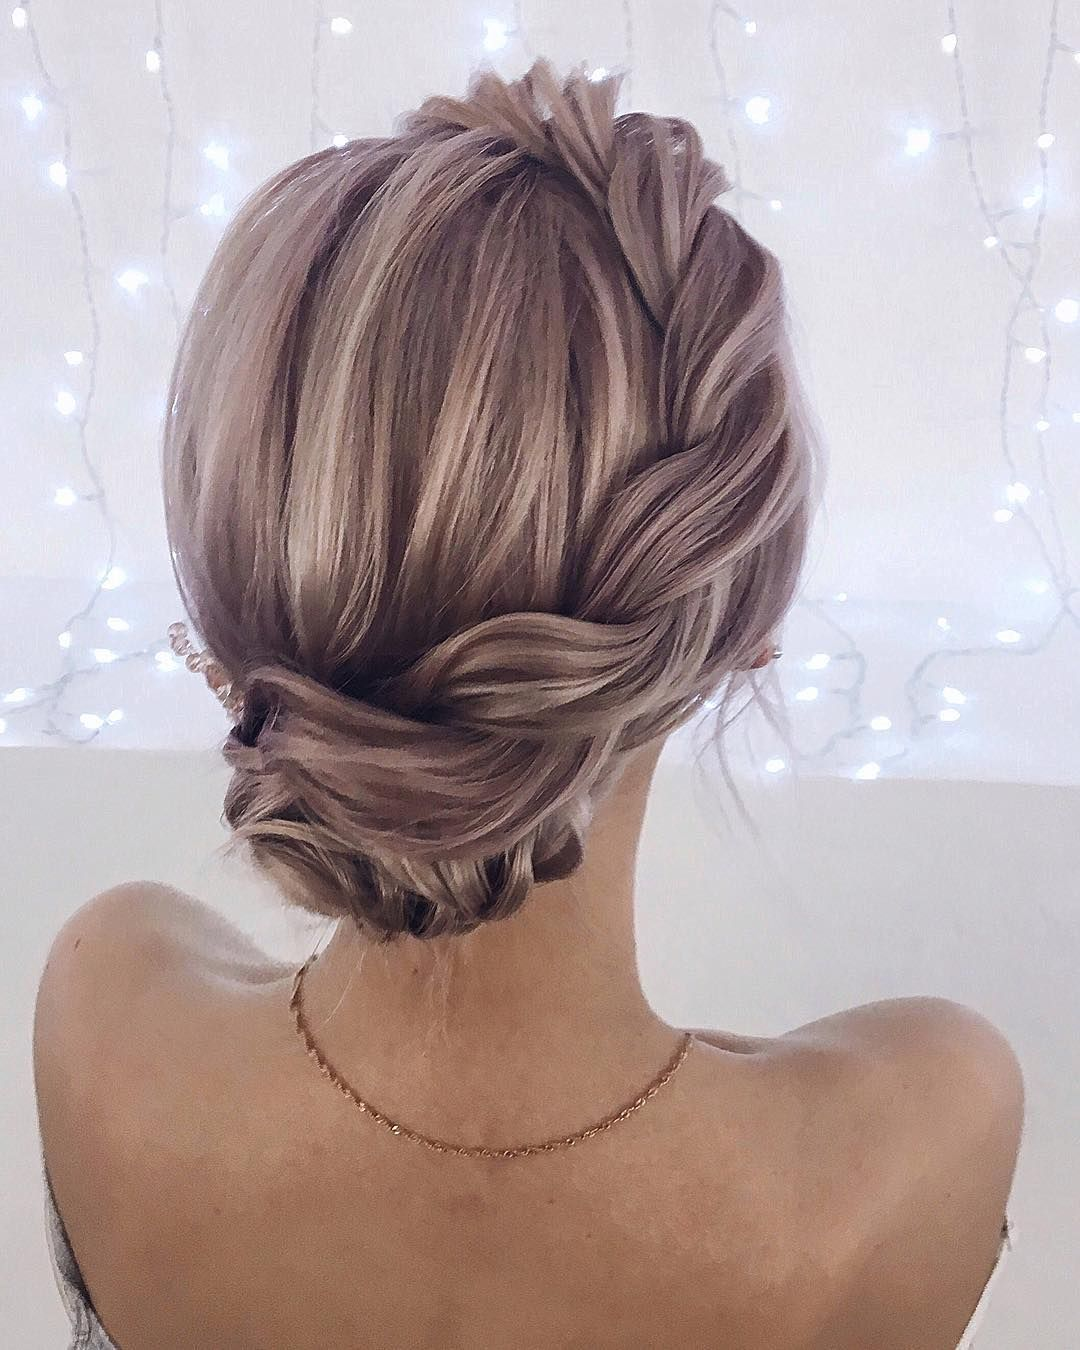 Wedding Hair Style Video: Unique Wedding Hairstyle Will Never Go Out Of Style